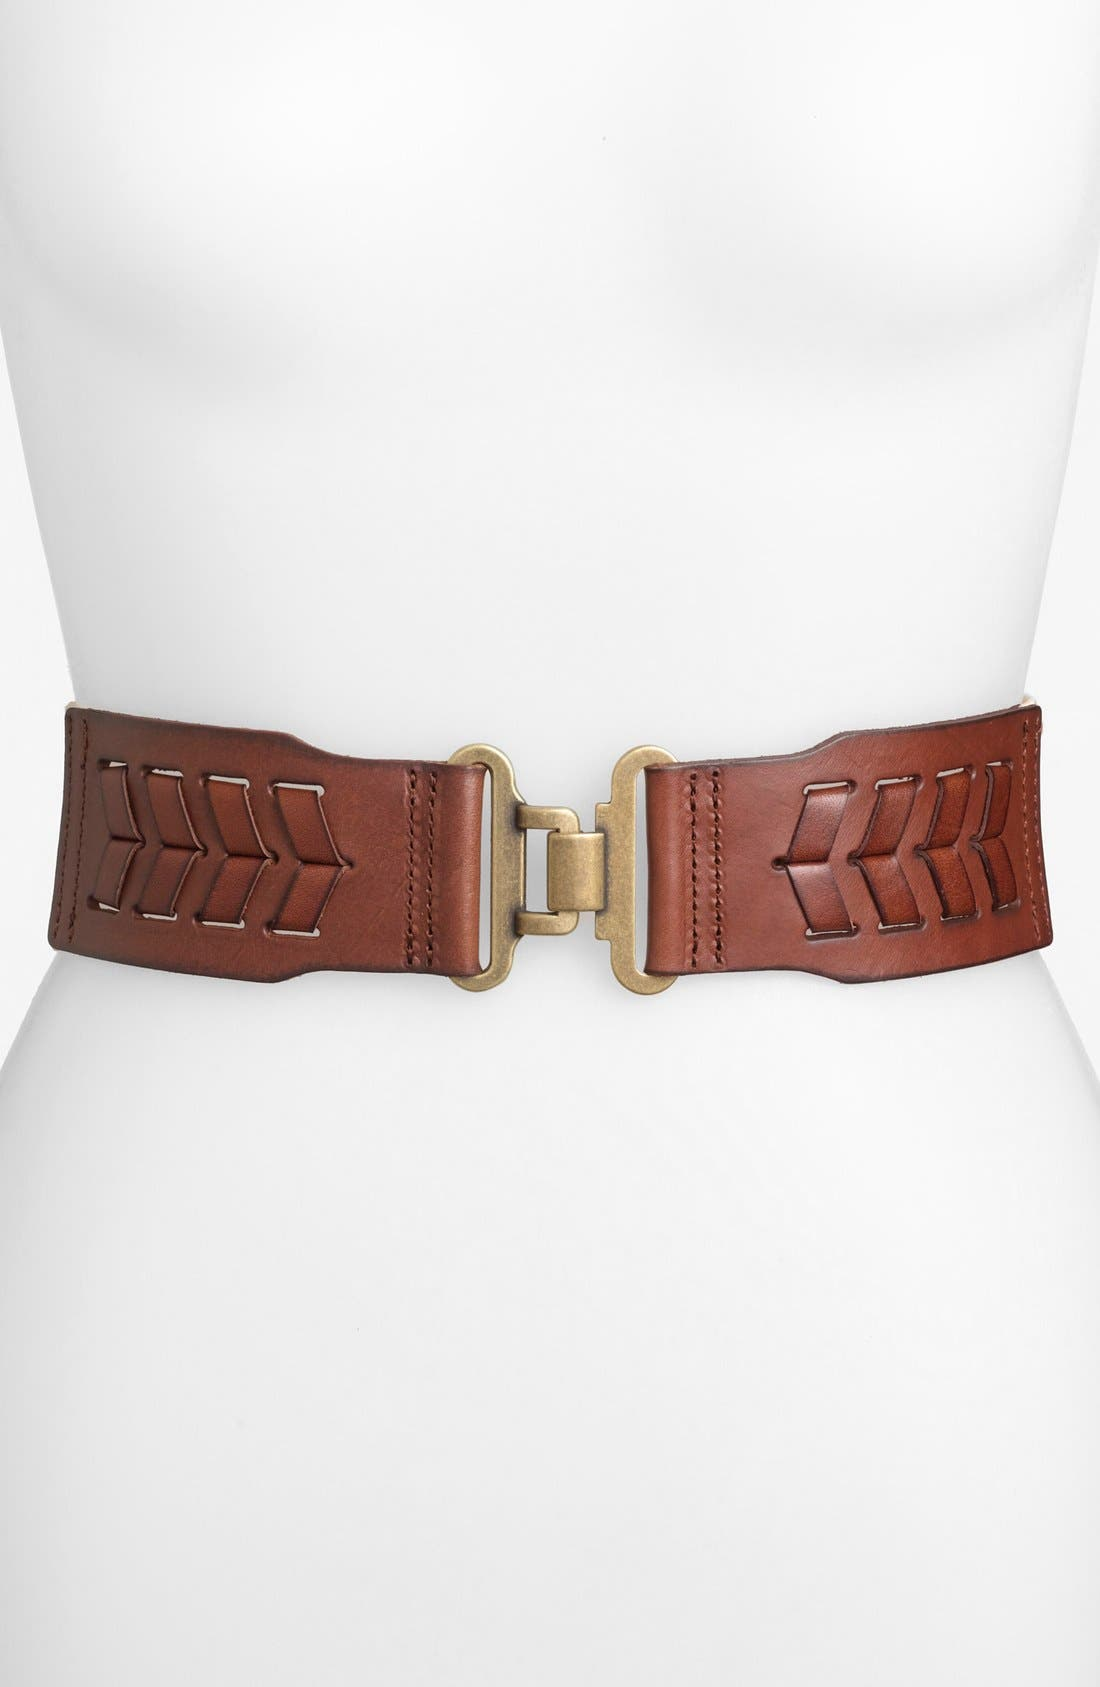 Alternate Image 1 Selected - Fossil Laced Stretch Belt